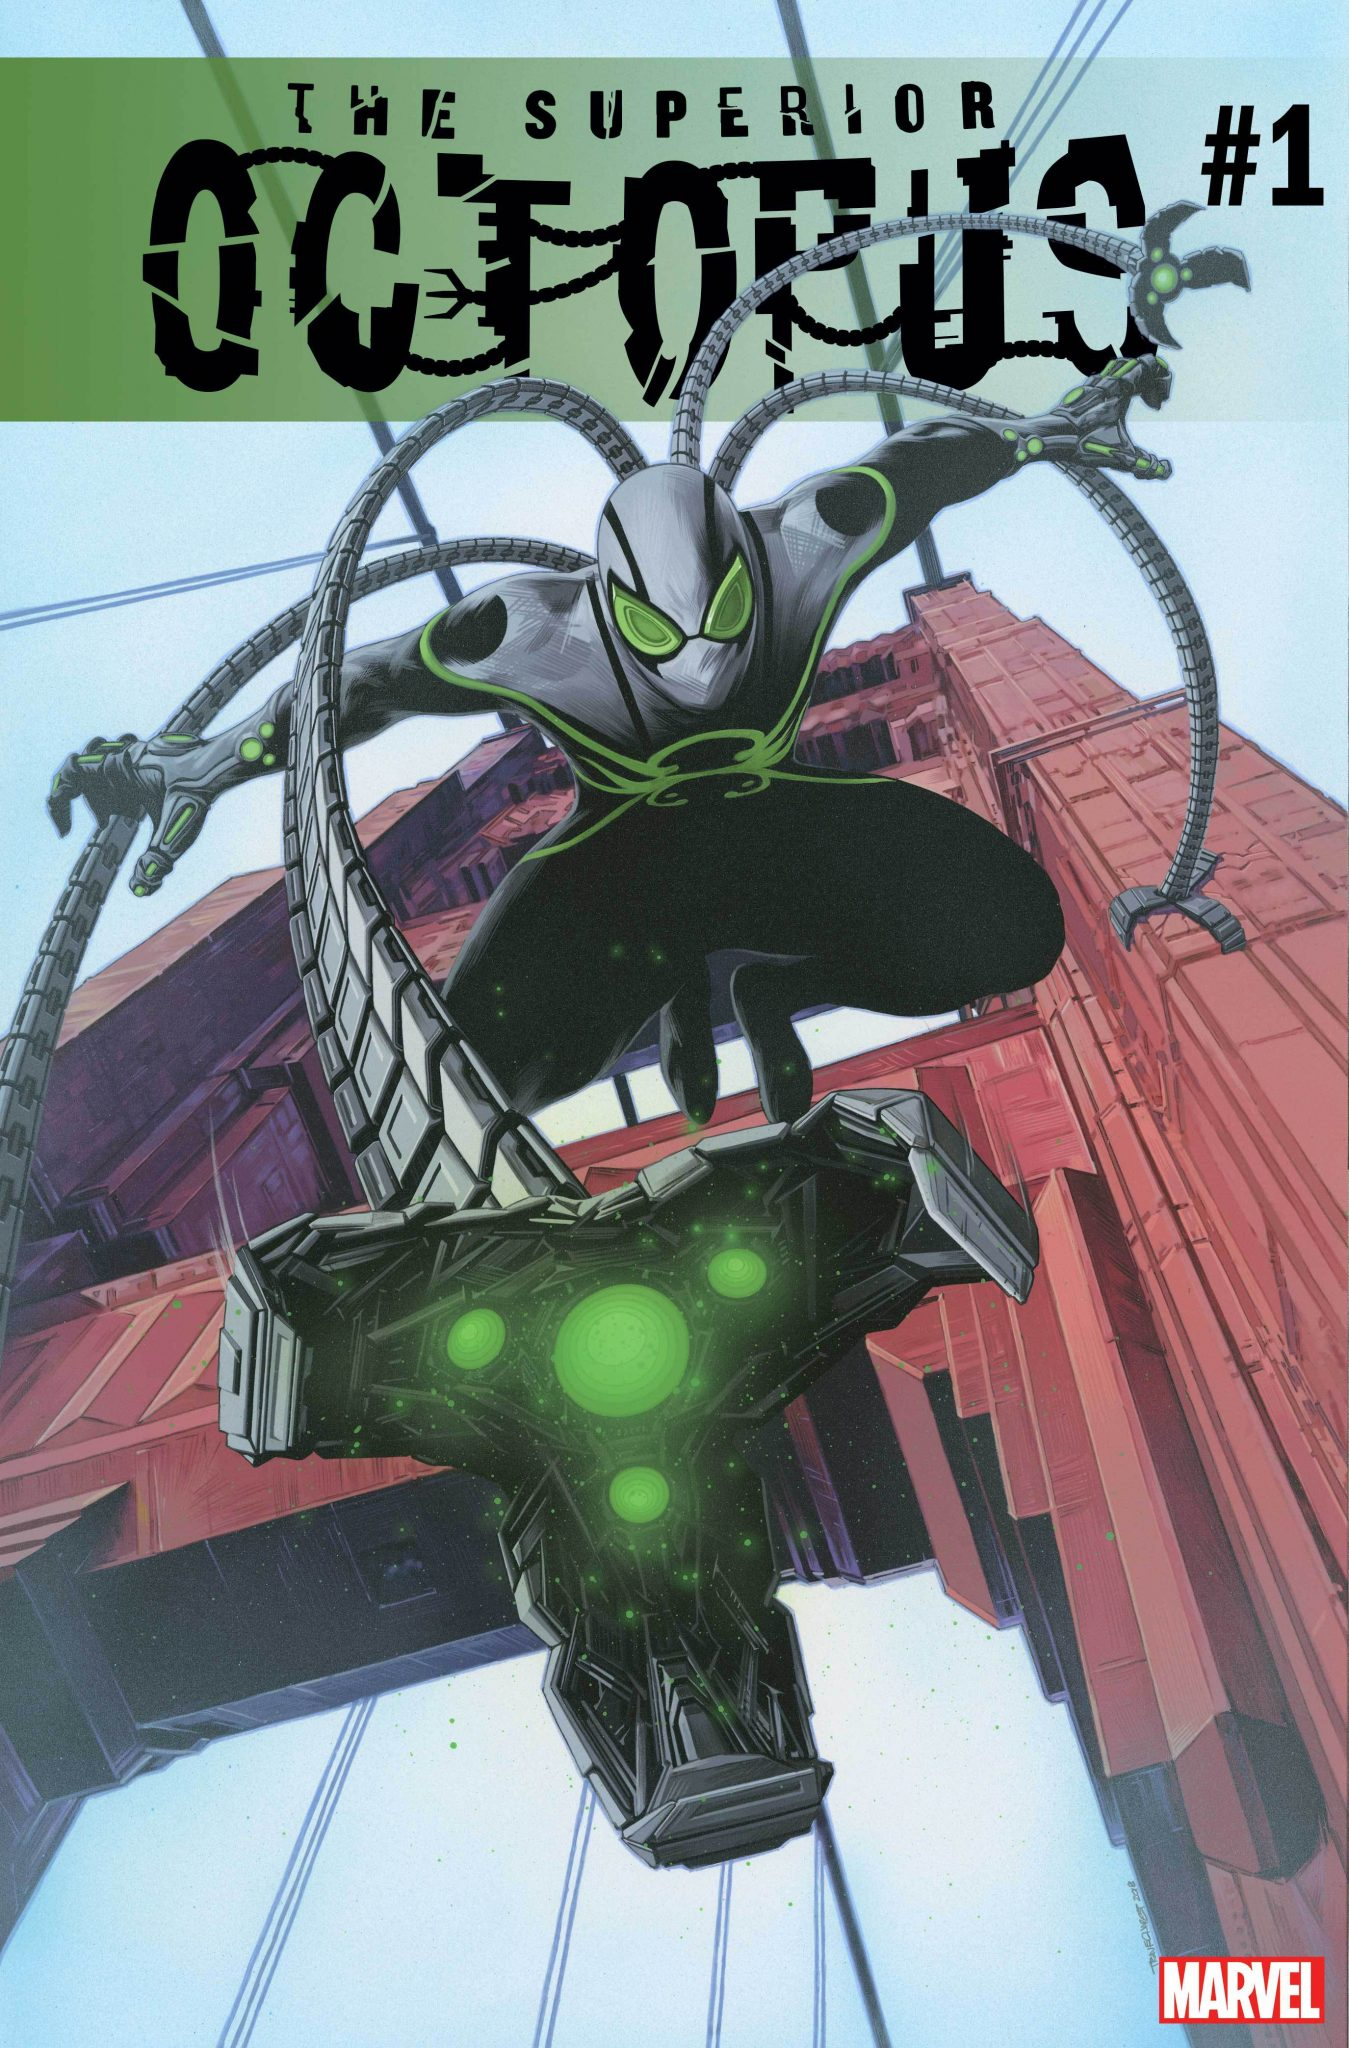 O melhor da Marvel na SDCC 2018 - Octopus Superior - The Superior Octopus #1